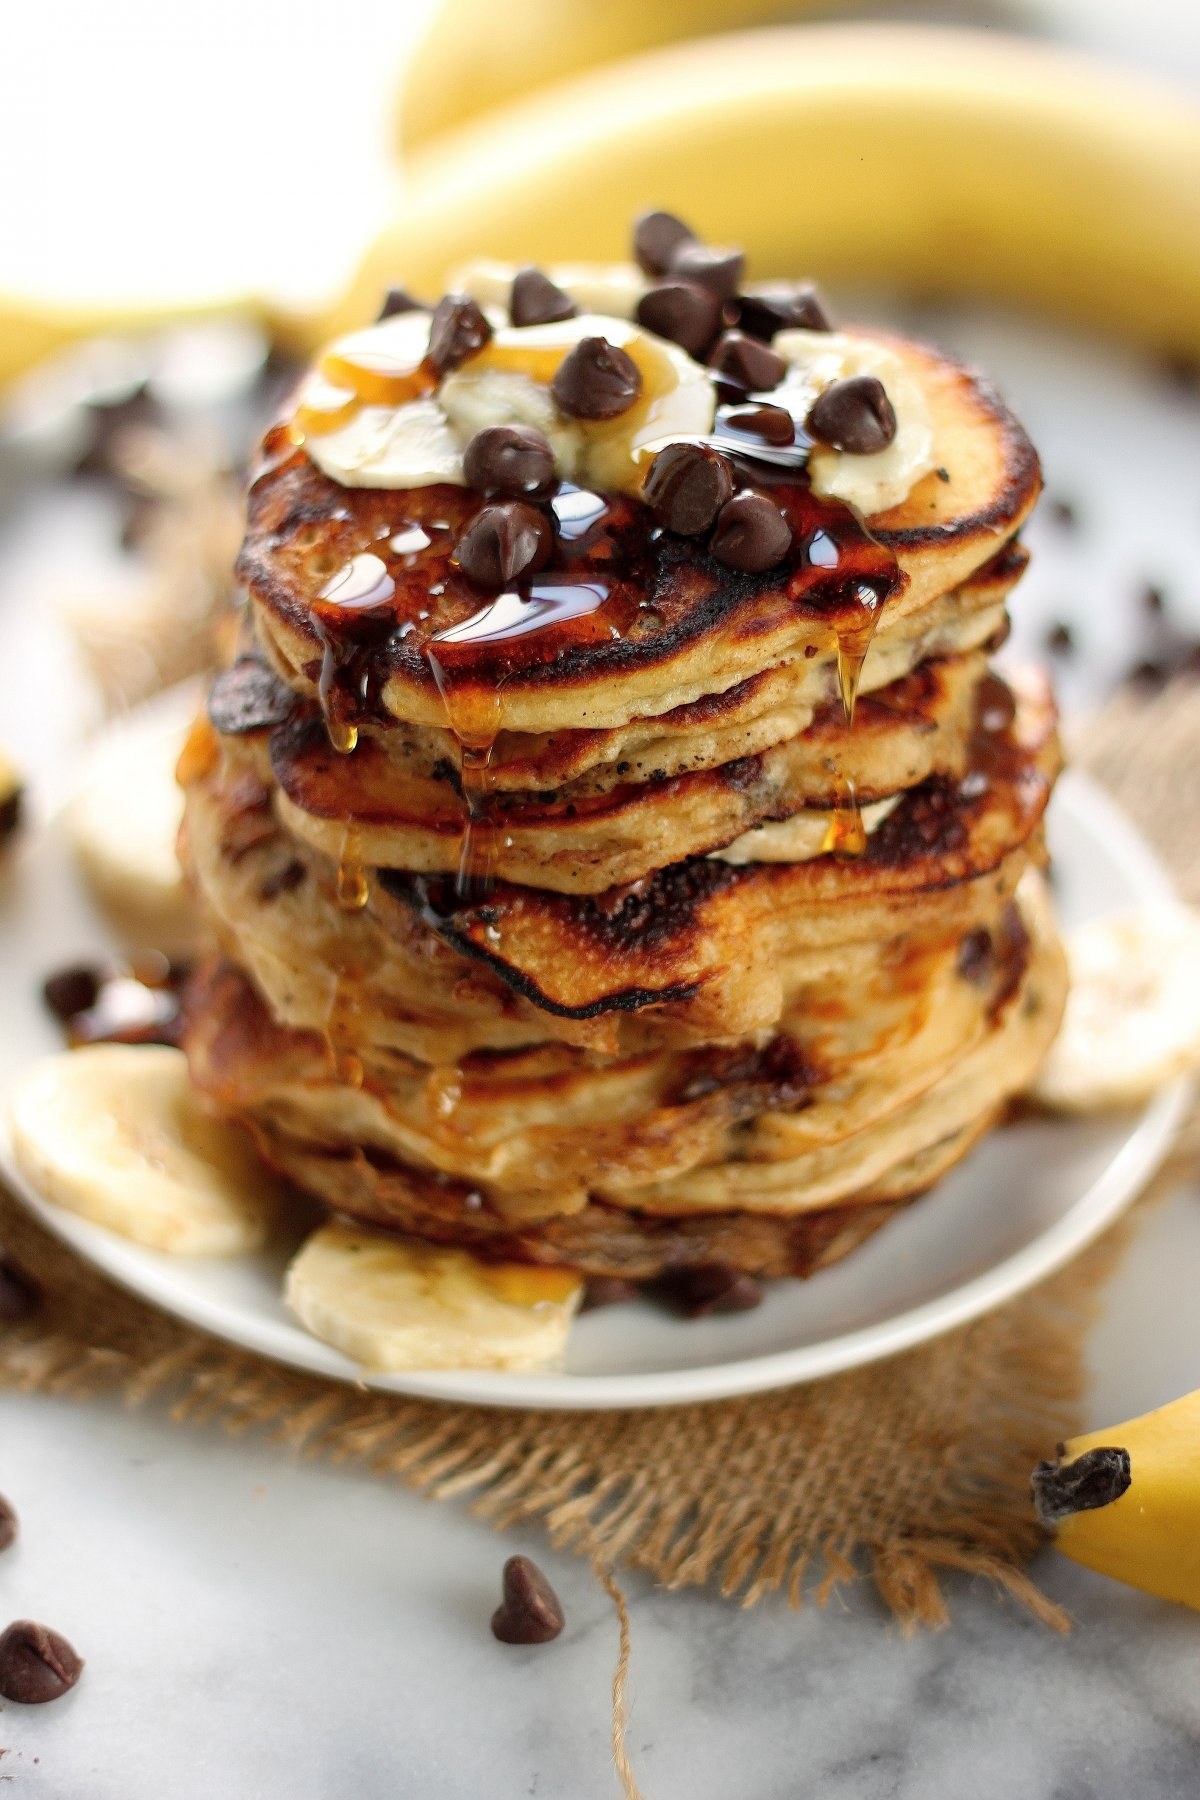 Malted Chocolate Chip Banana Pancakes - Baker by Nature